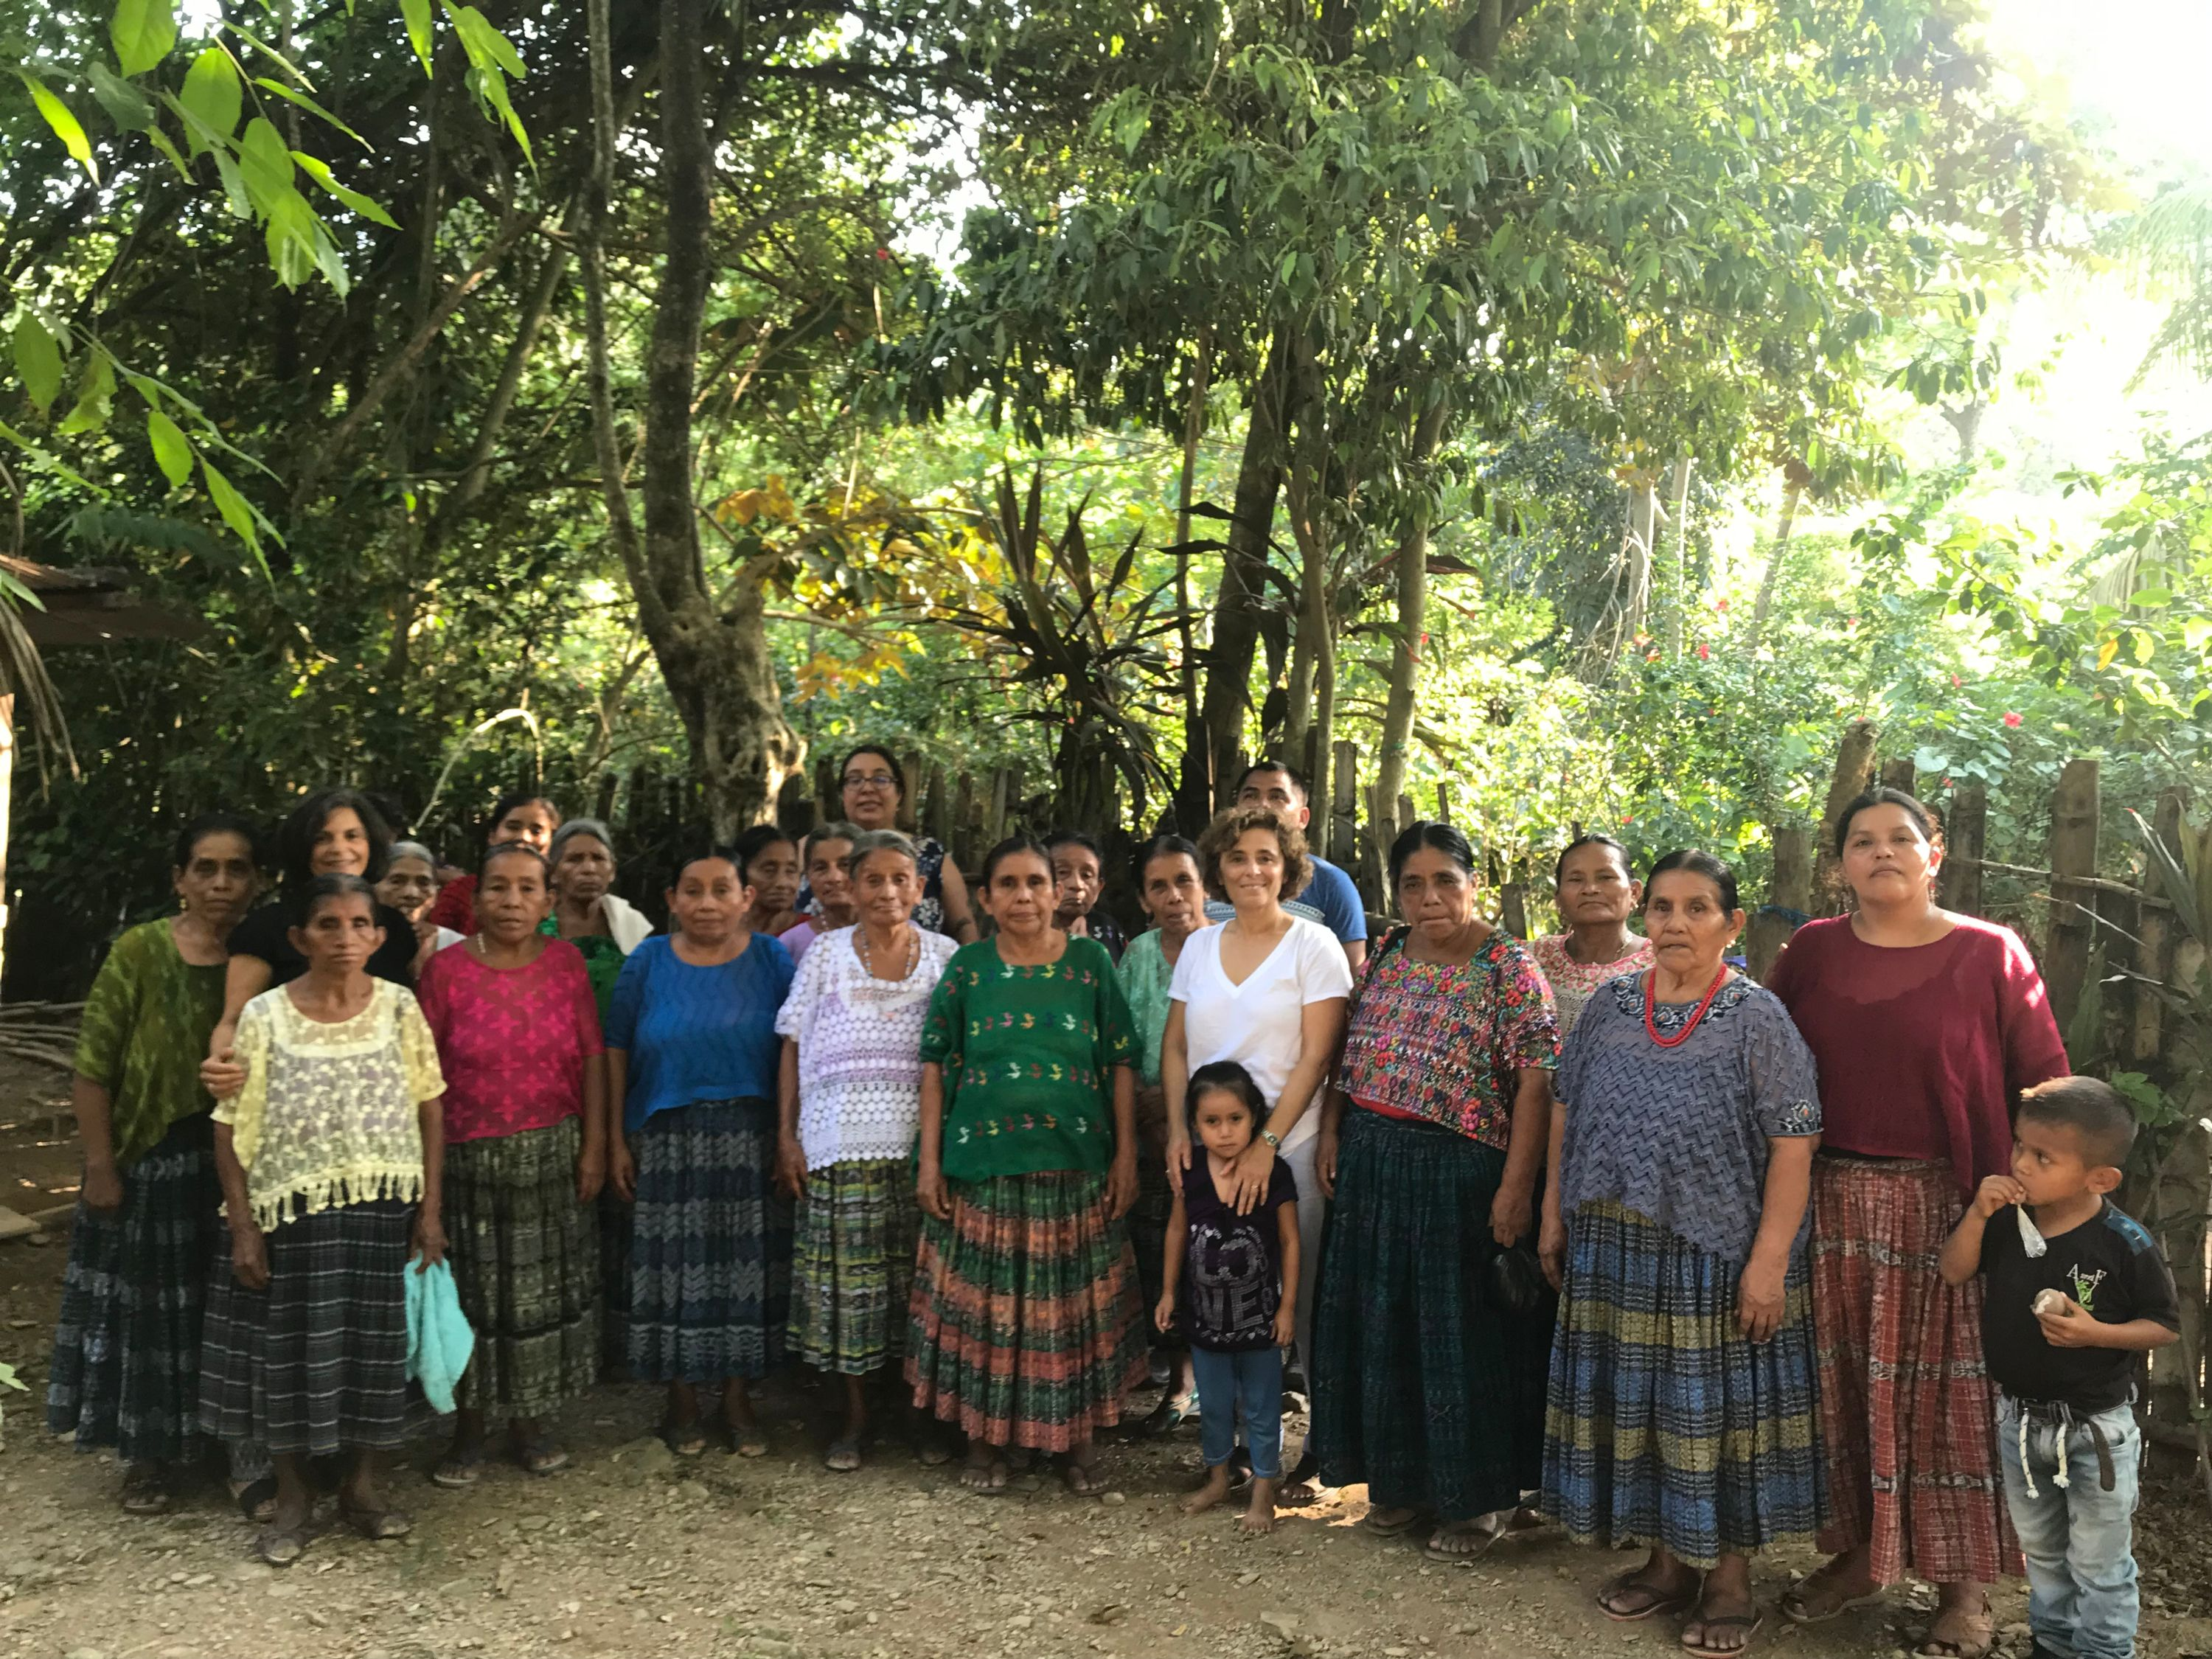 Partnership with UN Women on Documenting Good Practice on Accountability for Conflict-Related Sexual Violence in Guatemala